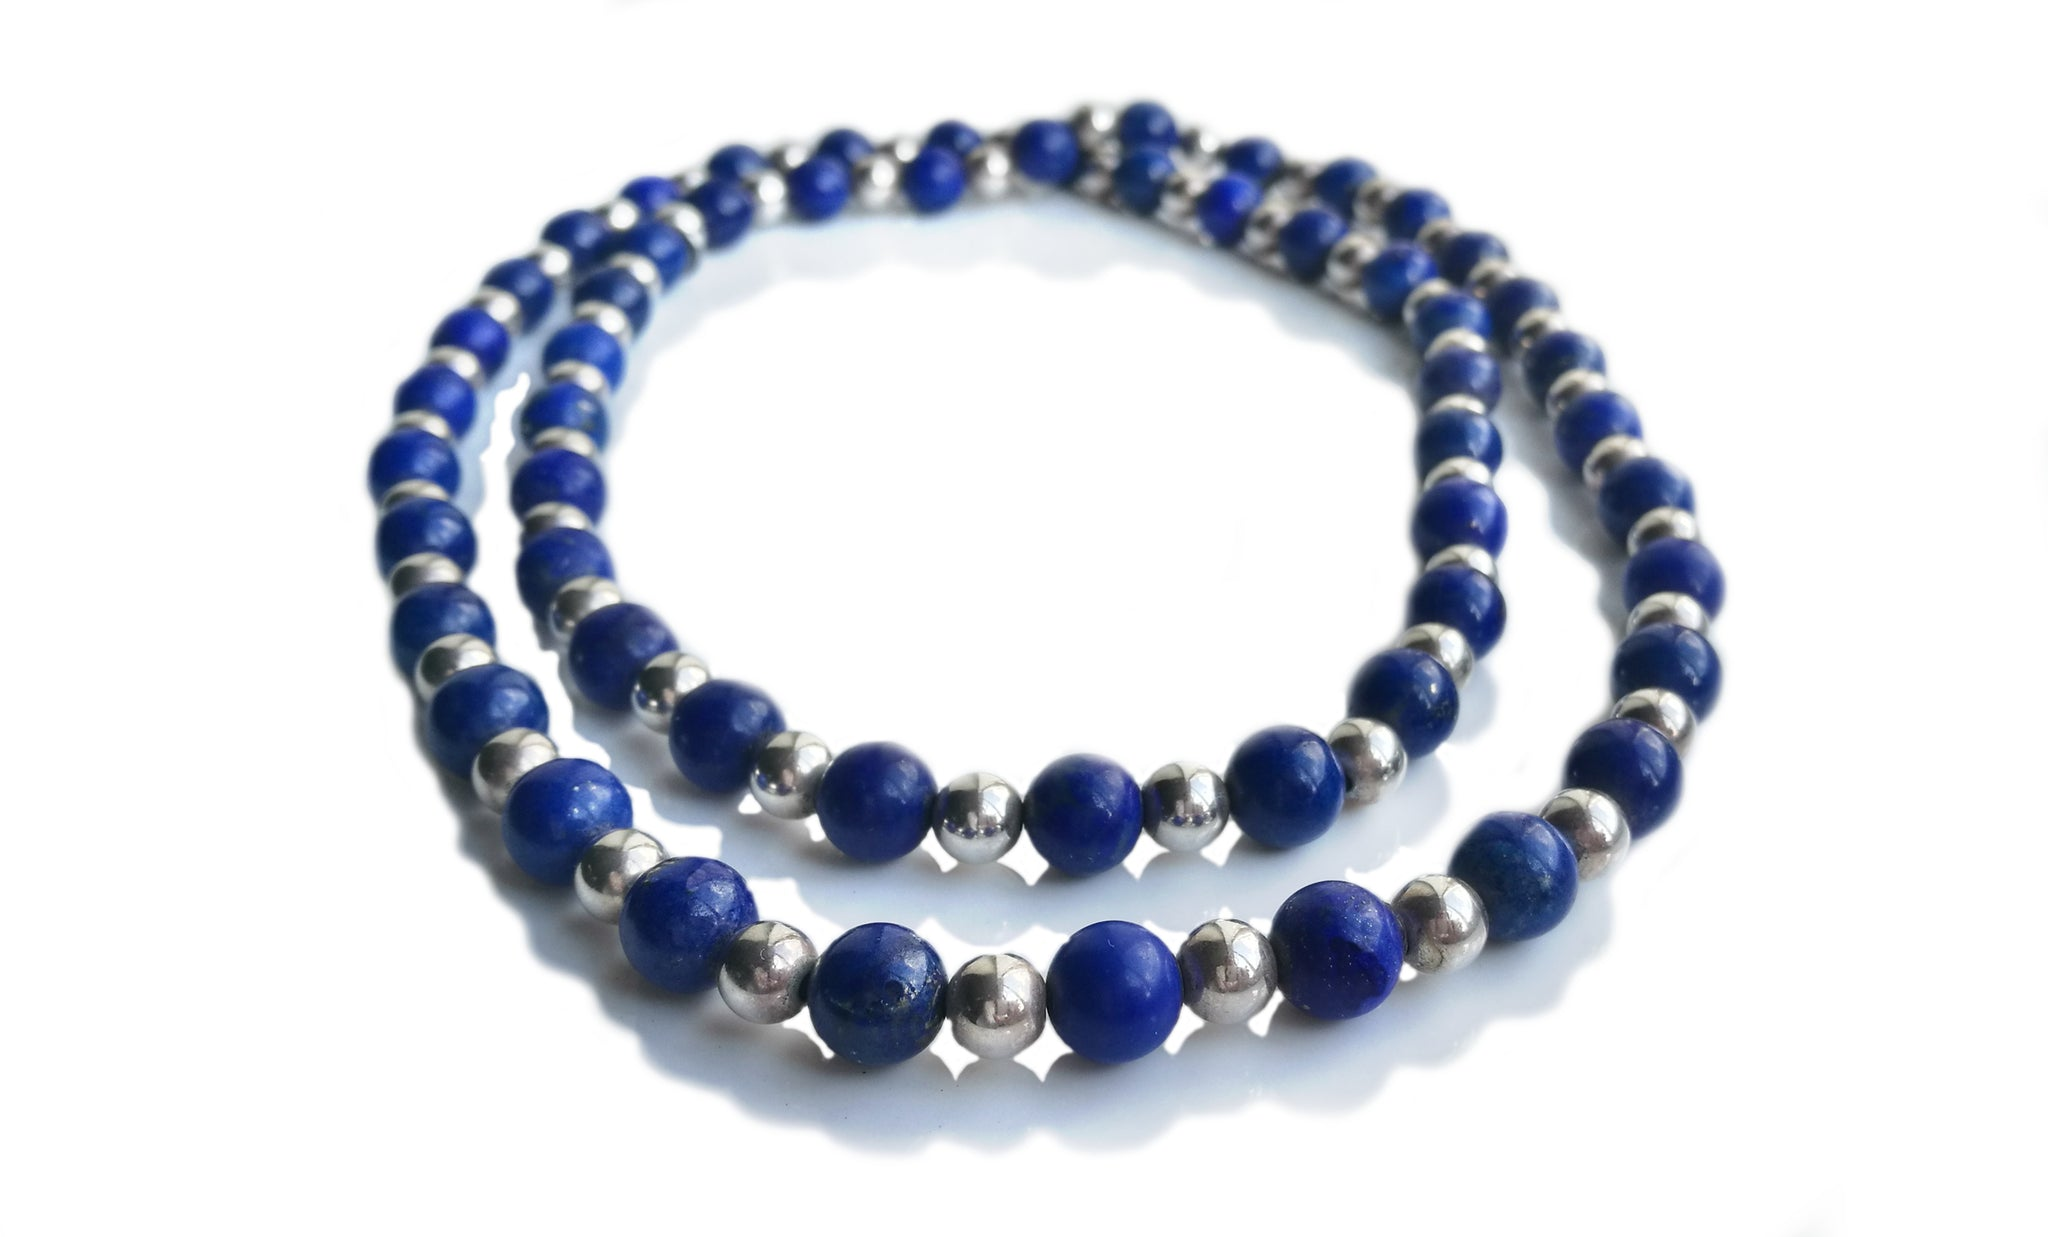 f5a526b3598c2 Tiffany & Co Sterling Silver Lapis Lazuli Bead Sautoir Necklace 30 in